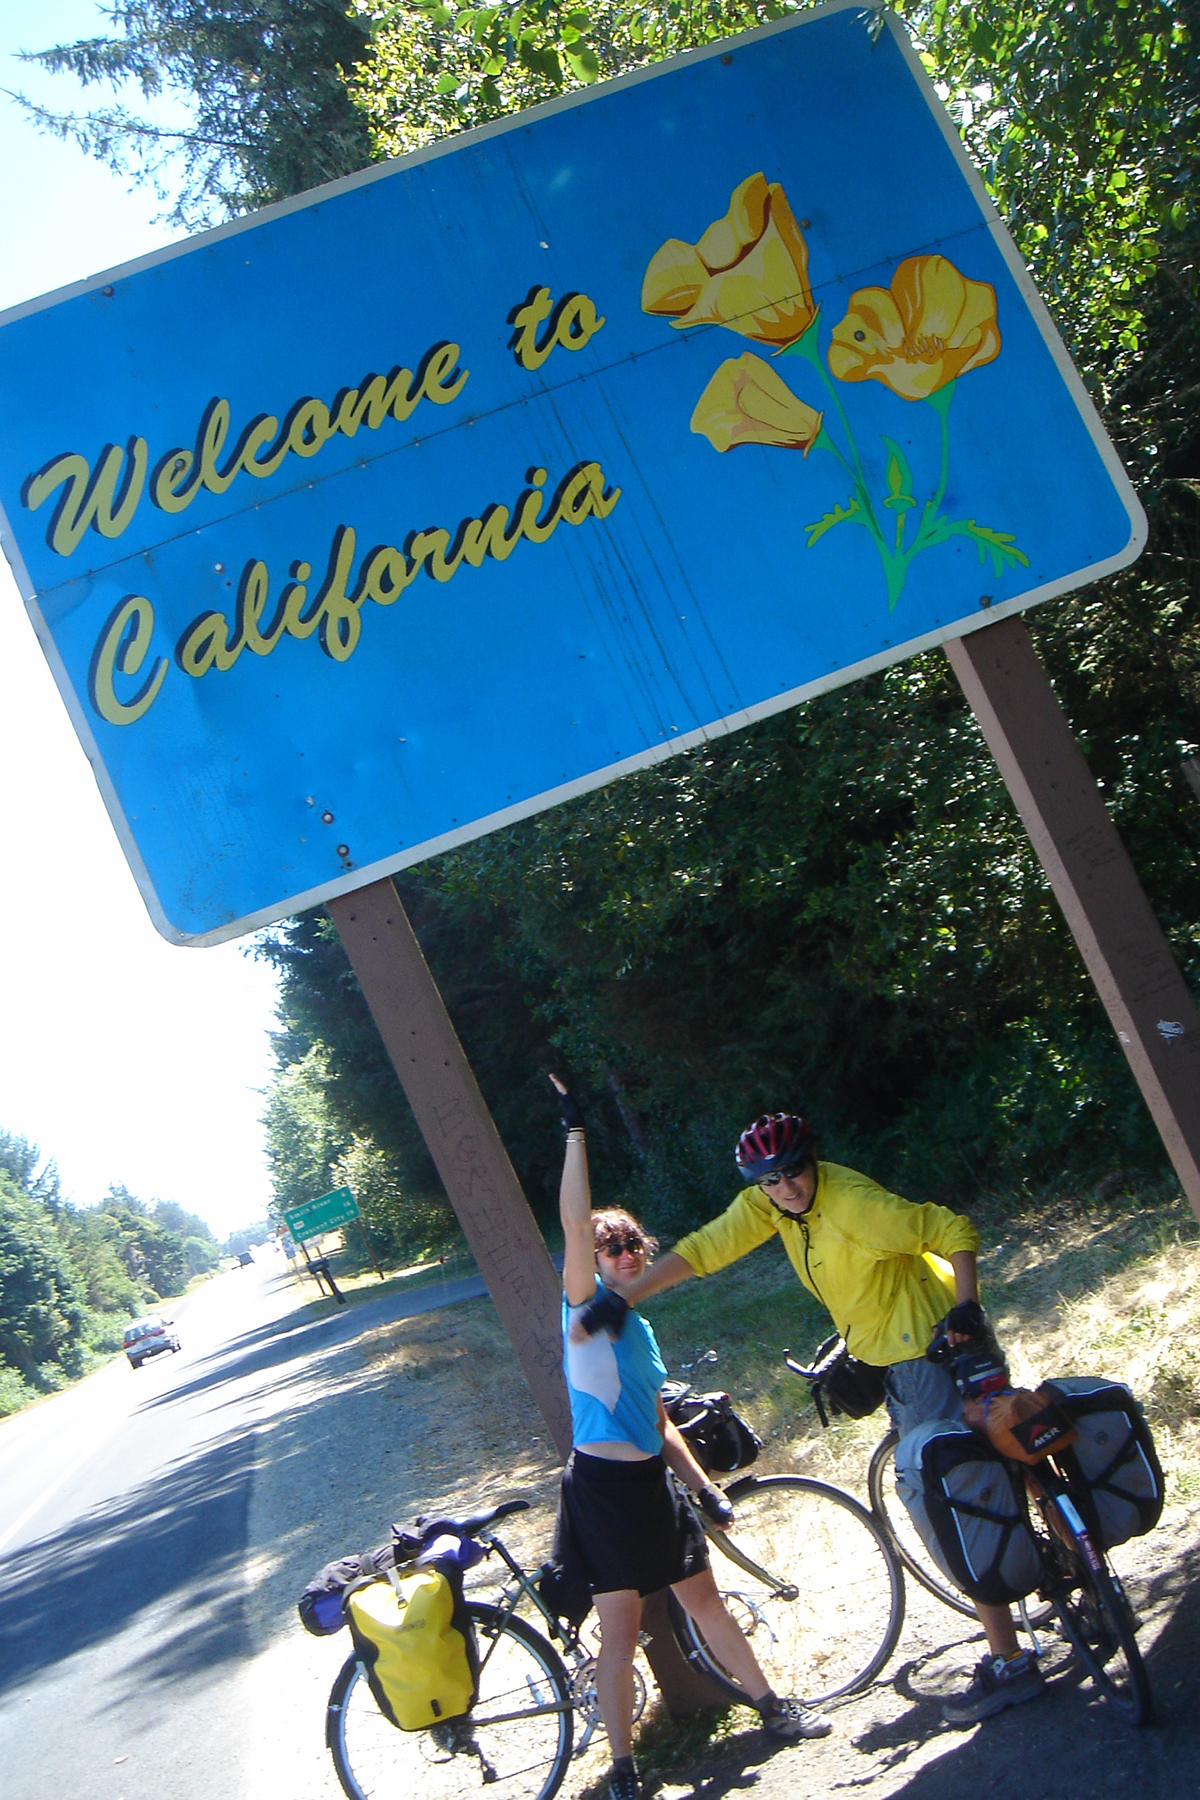 July 29, California State Line